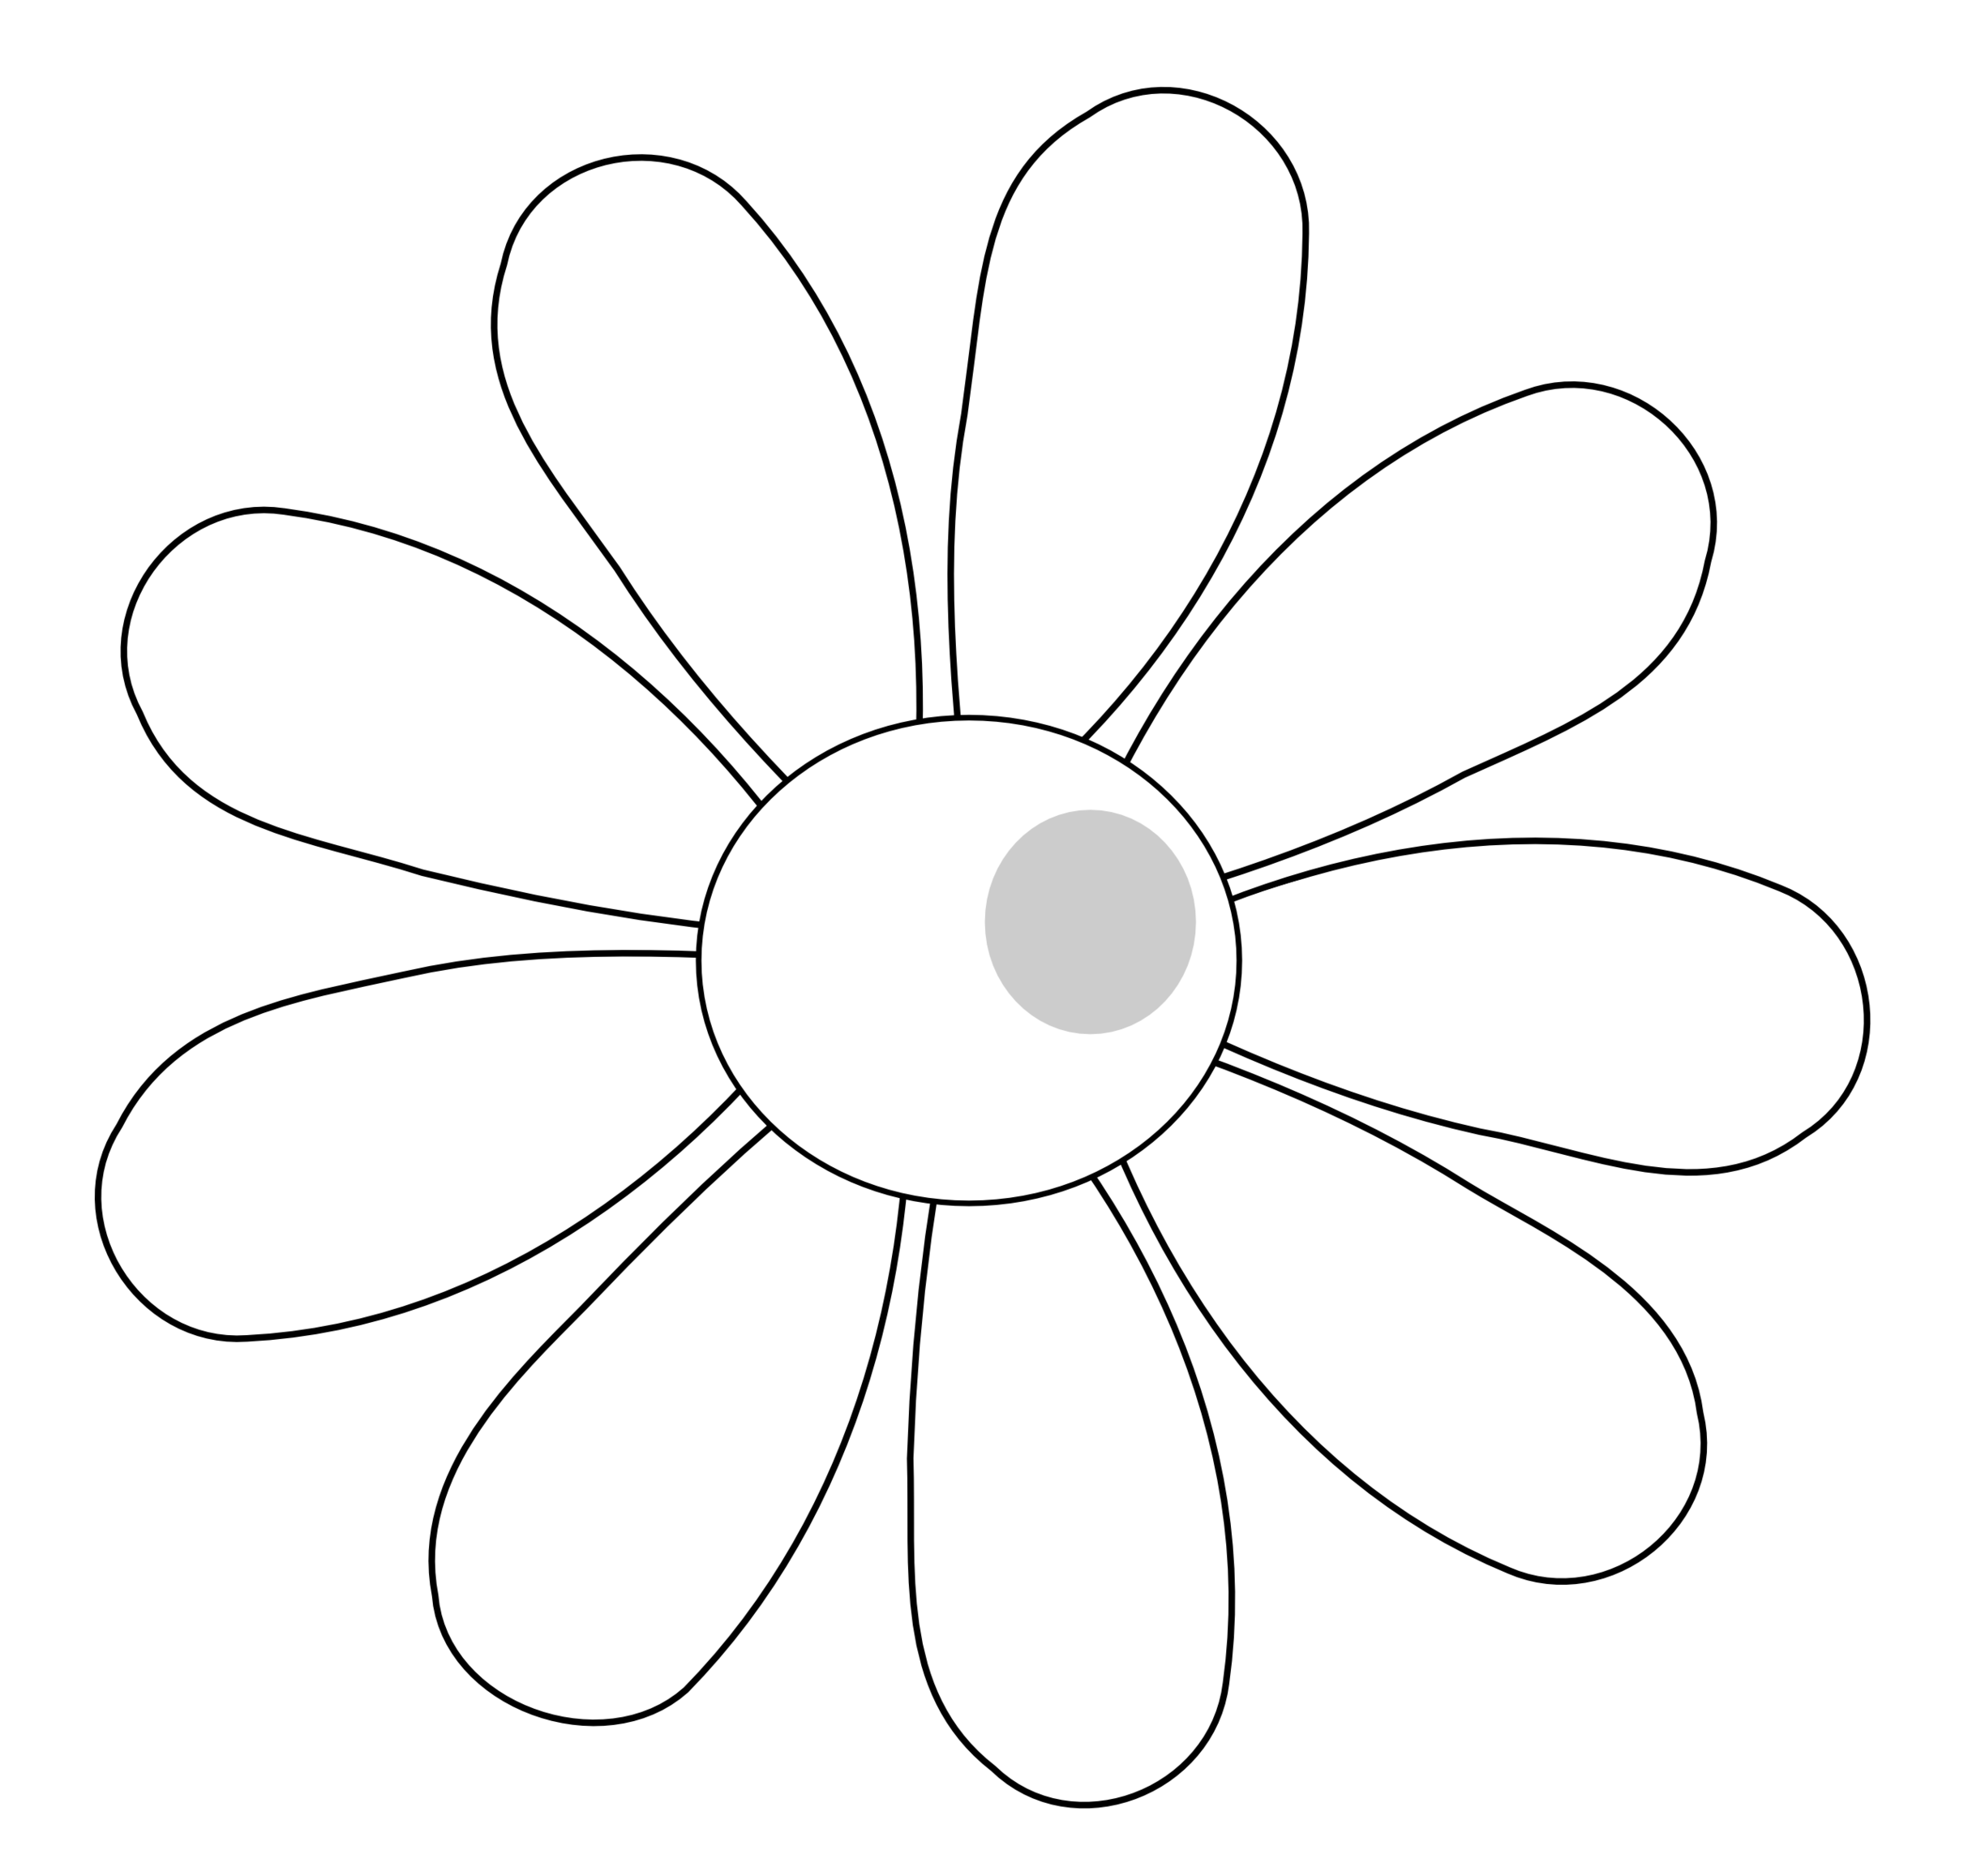 Rose flower clipart black and white png library download Flower Outline Clip Art Daisies – Clipart Free Download png library download